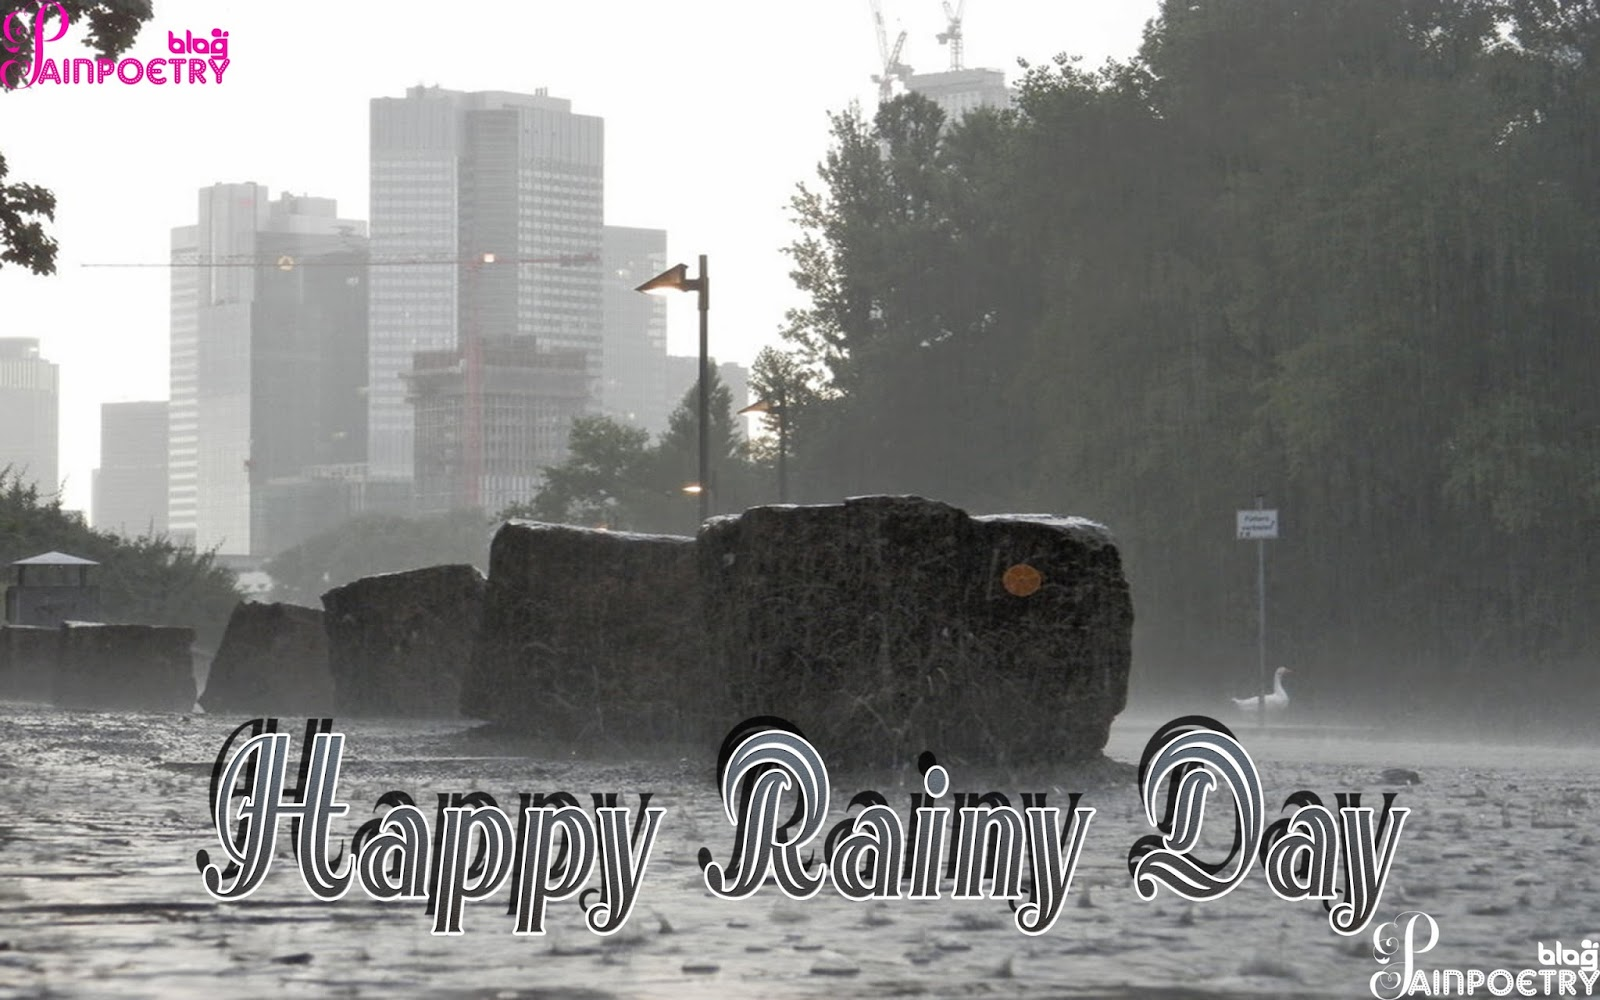 Rainy-Day-Image-Rainy-Day-Wallpaper-Rainy-Day-Pic-HD